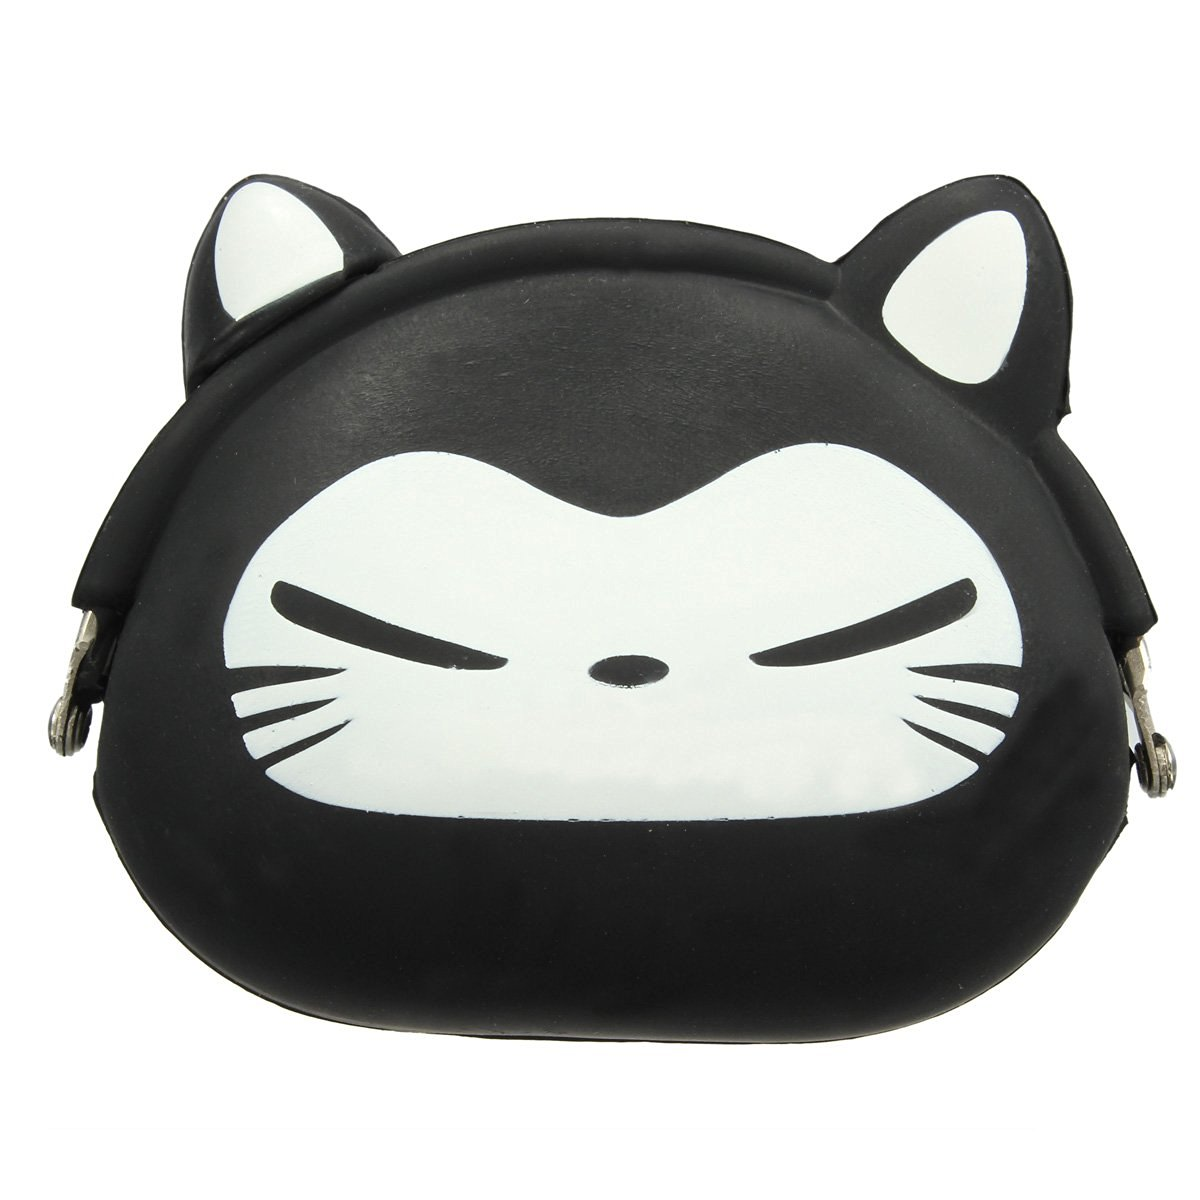 5) Women Girls Wallet Kawaii Cute Cartoon Animal Silicone Jelly Coin Bag Purse Kids Gift Black Fox